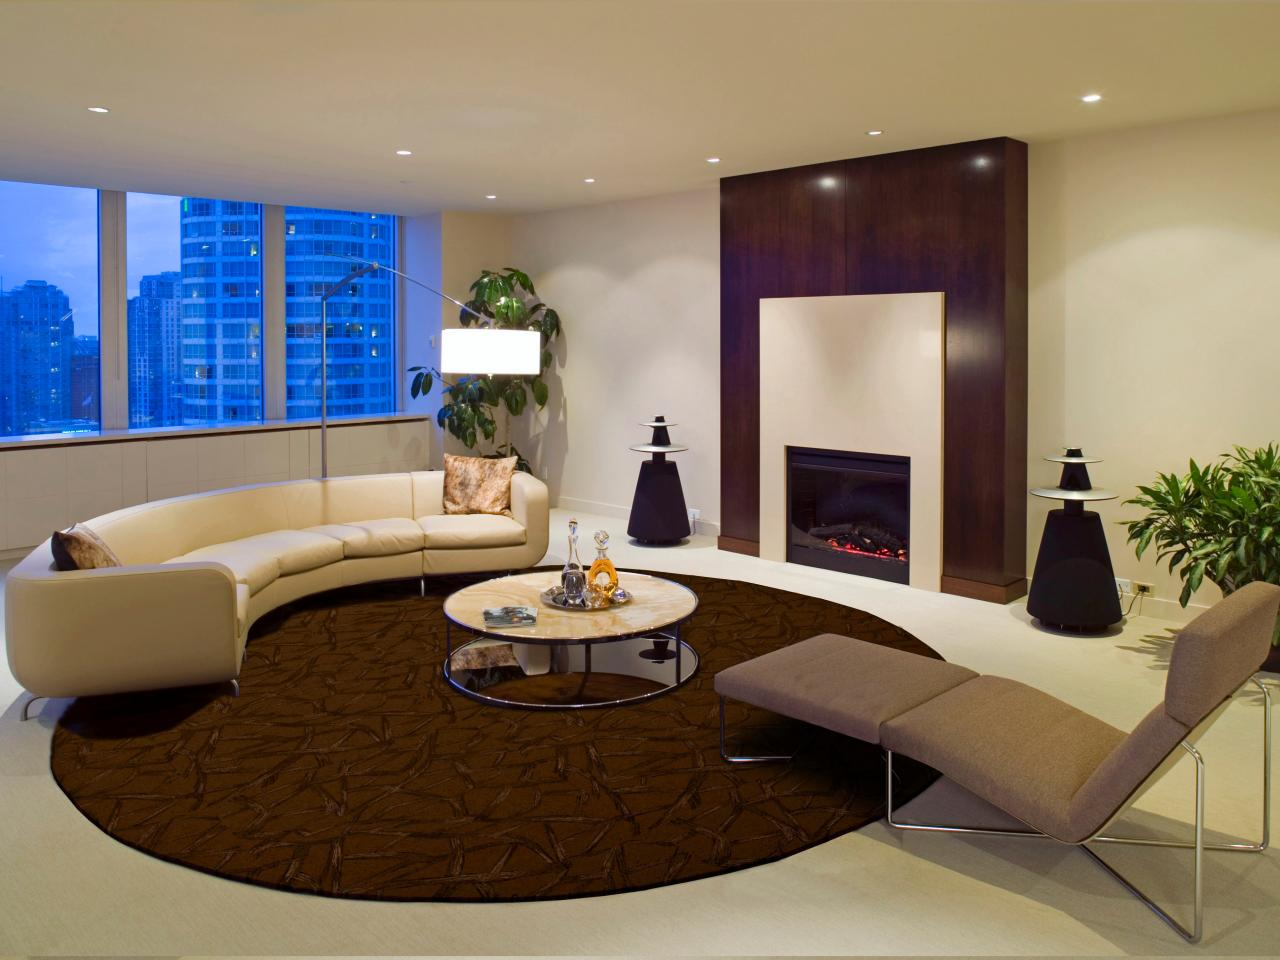 round area rug living room round rug placement living room HFKYLAG